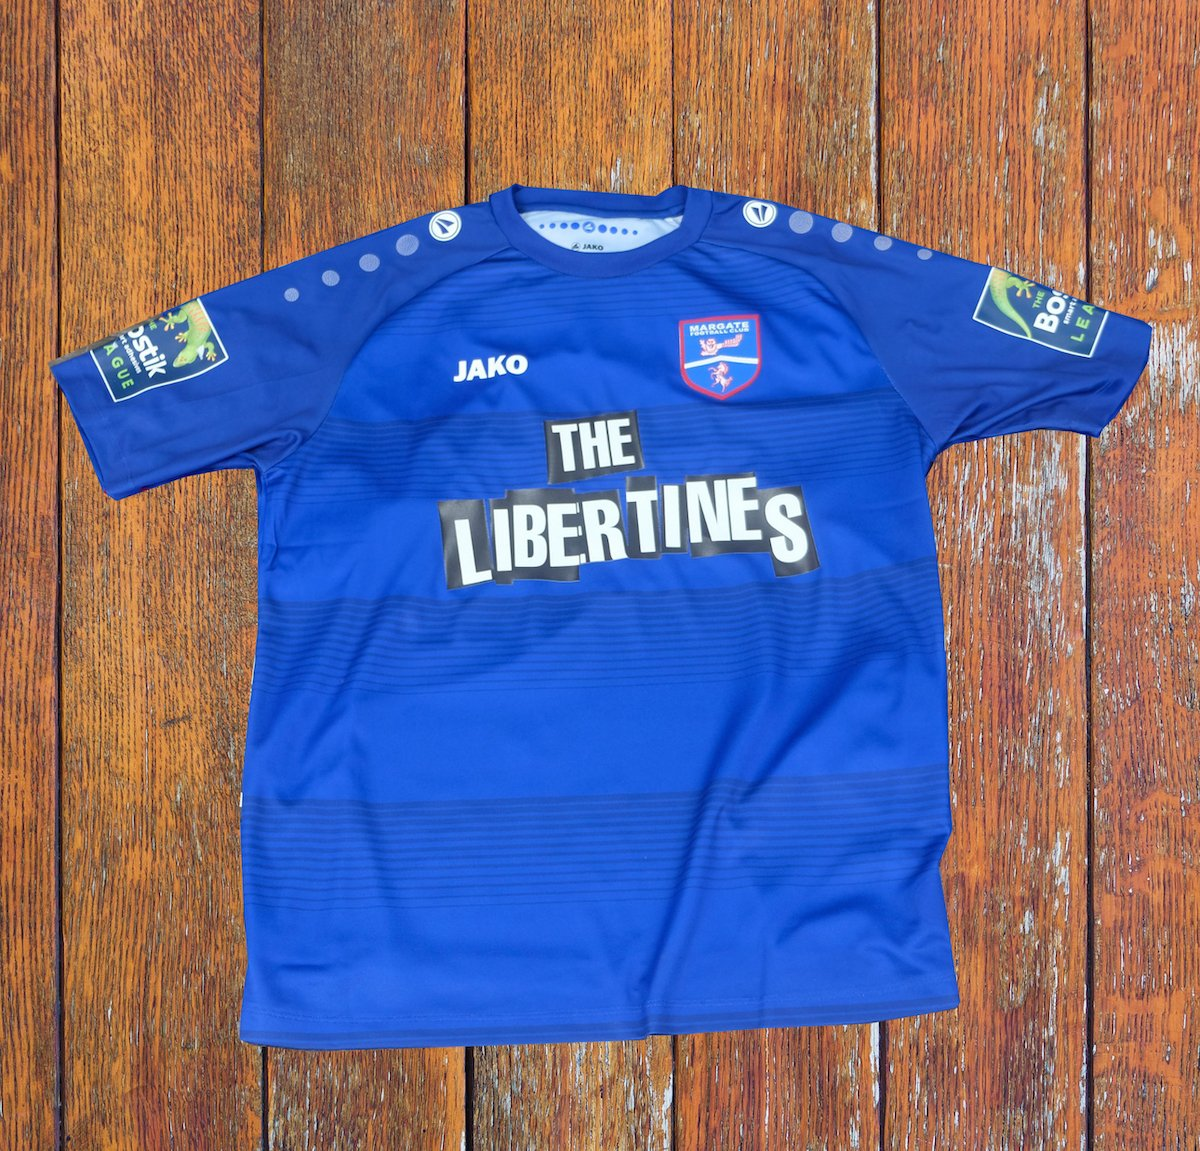 Fancy winning a #Margate shirt signed by The @Libertines? 👕  As it's #ValentinesDay we thought we'd share the 💙!   Follow➕RT for your chance to be presented with the shirt before kick-off on Saturday.  ⭐️ Winner must be able to attend home game on 16.2.18  #InThisTogether 🔵⚪️